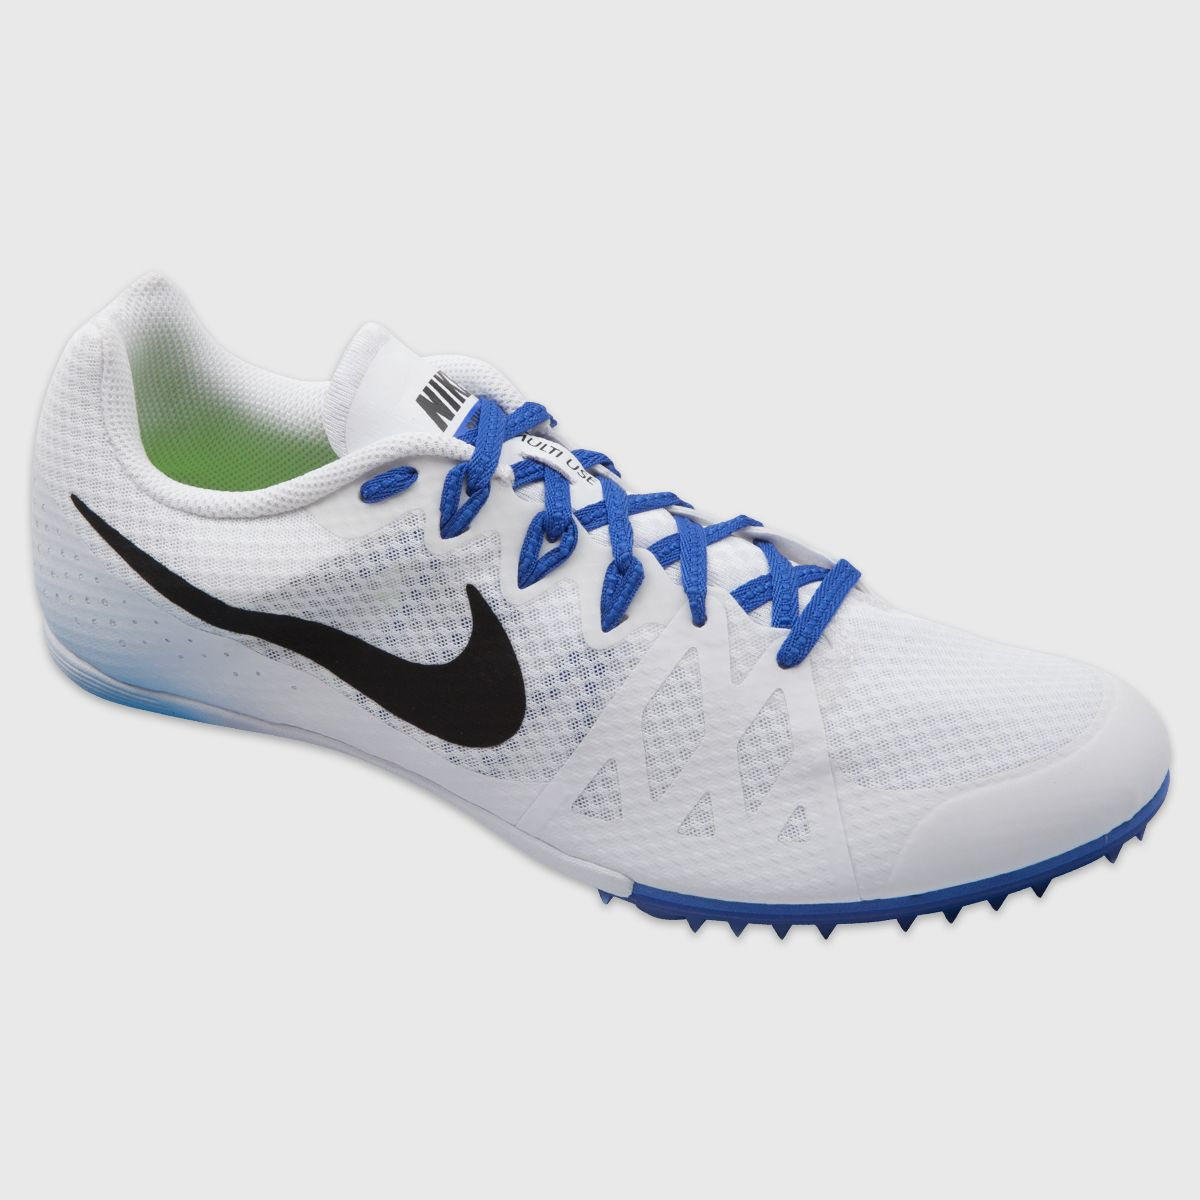 c625af7bd21 Zapatilla Deportiva Nike T LITE XI Piel Negra; Nike Zoom Rival MD 8 Men's -  $87.99 CDN From running, jumping, and anything